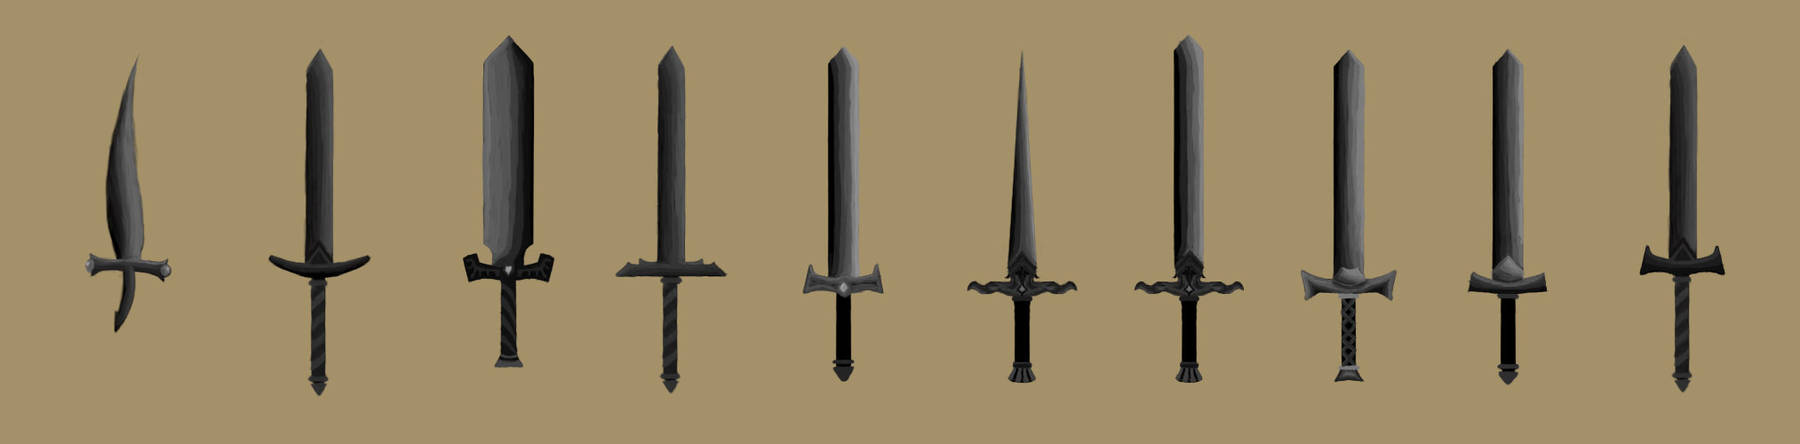 Swords - Concept Art by Abs-olute